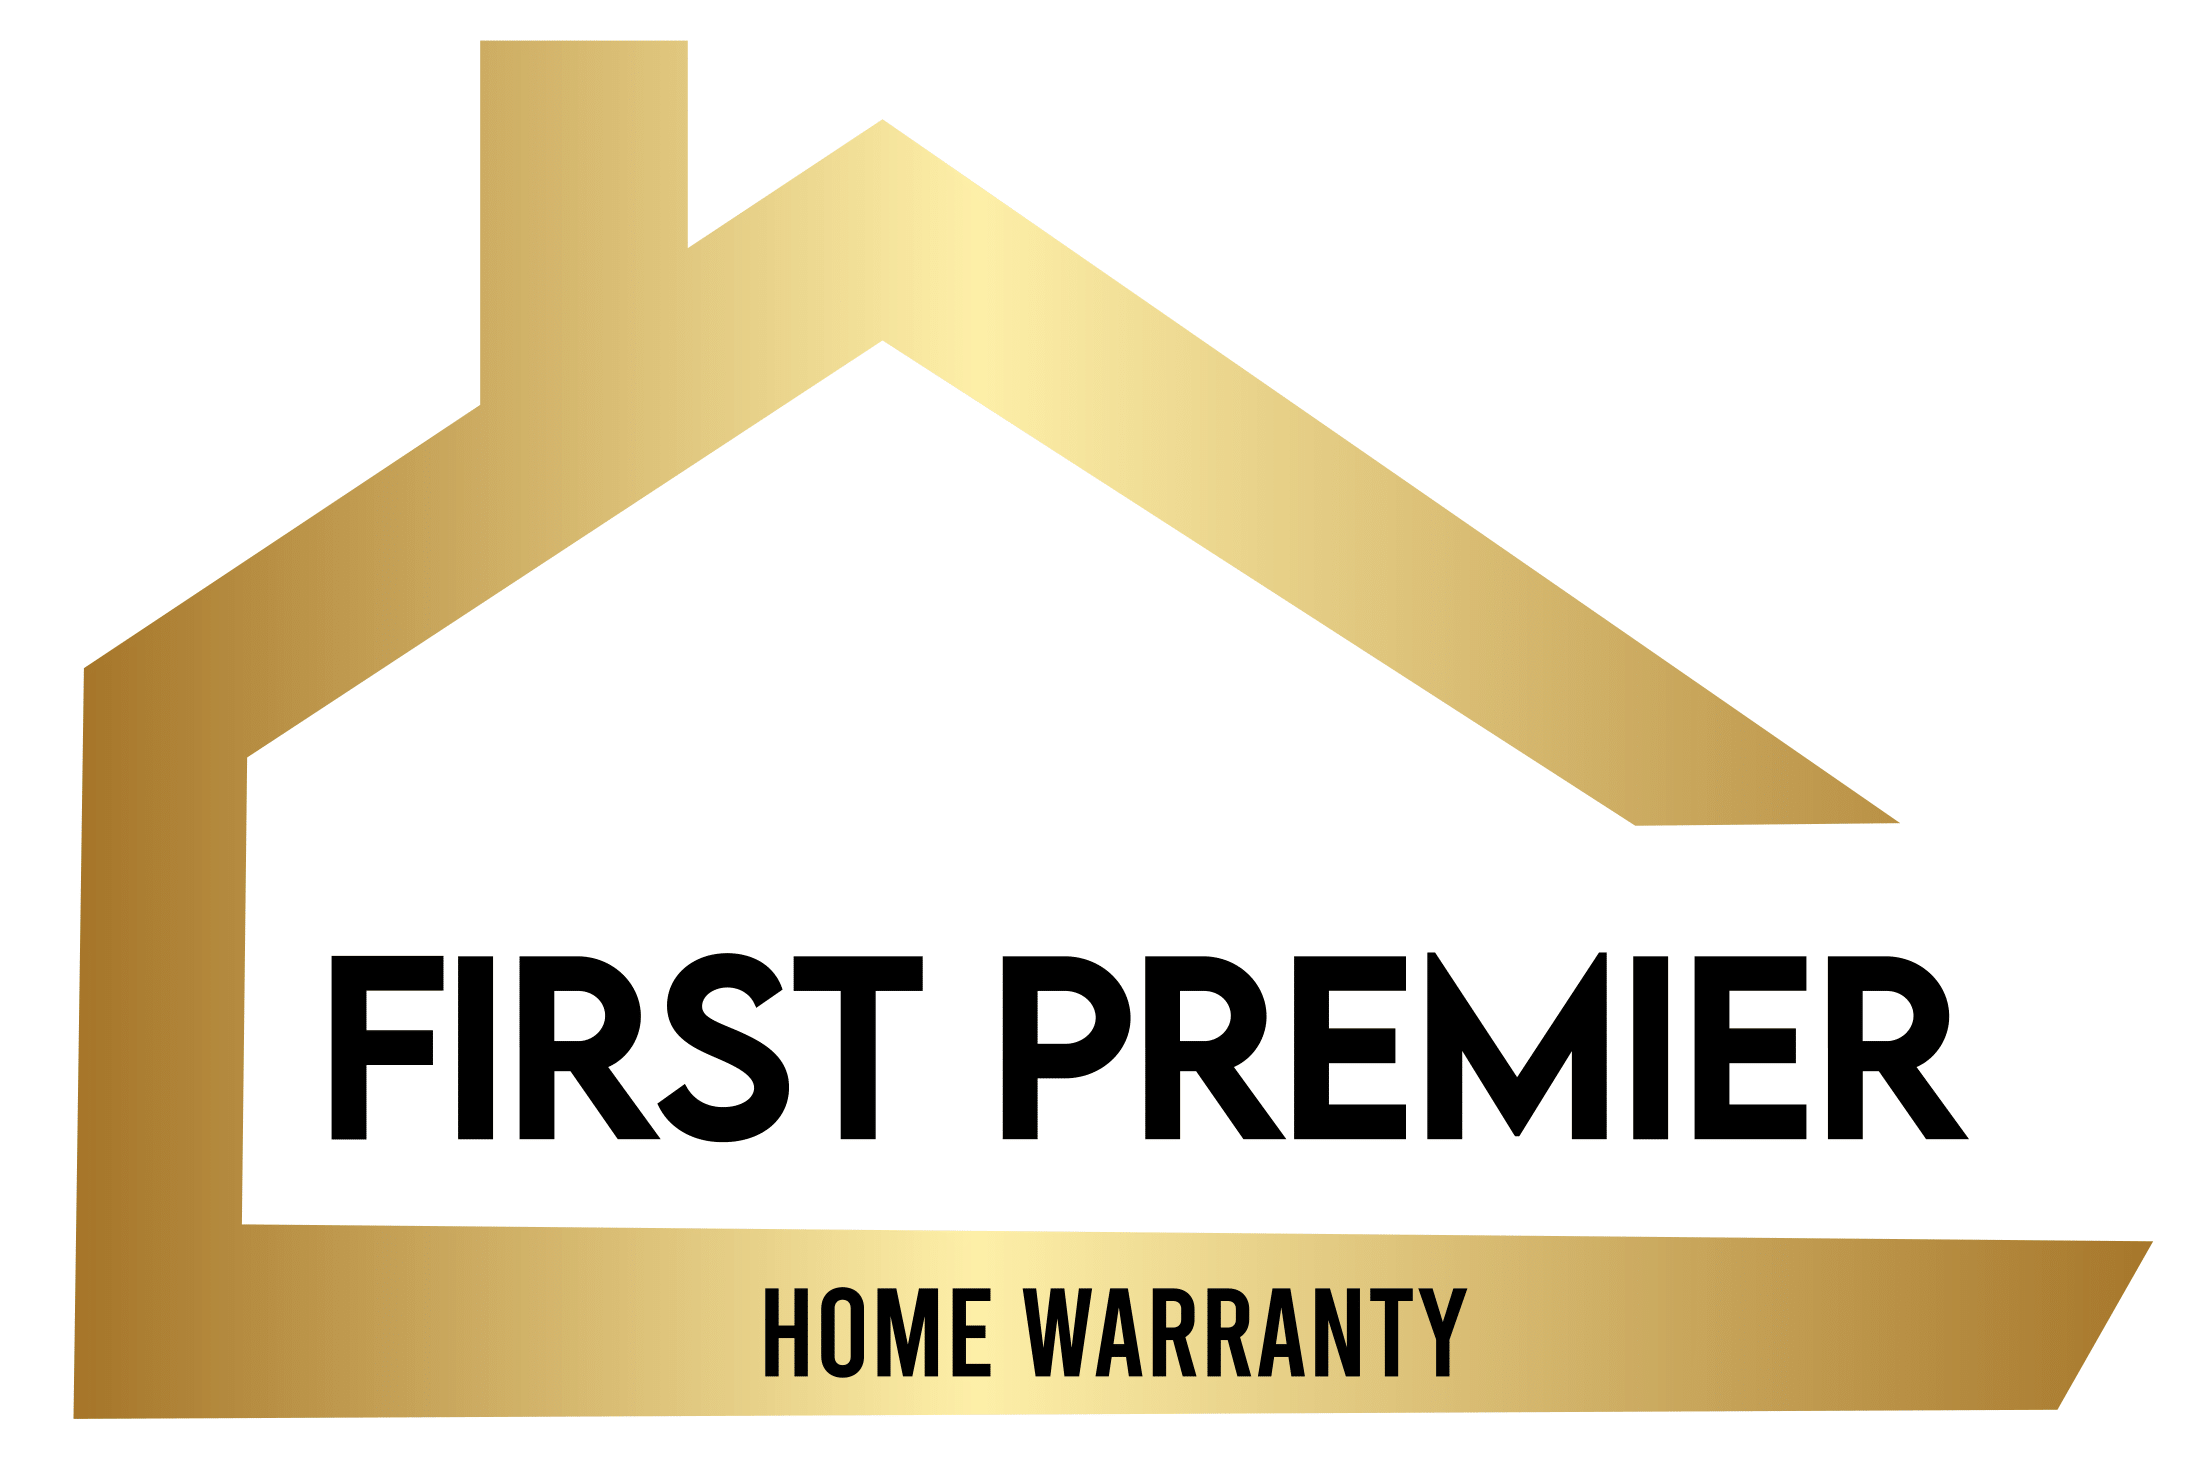 First Premier Home Warranty